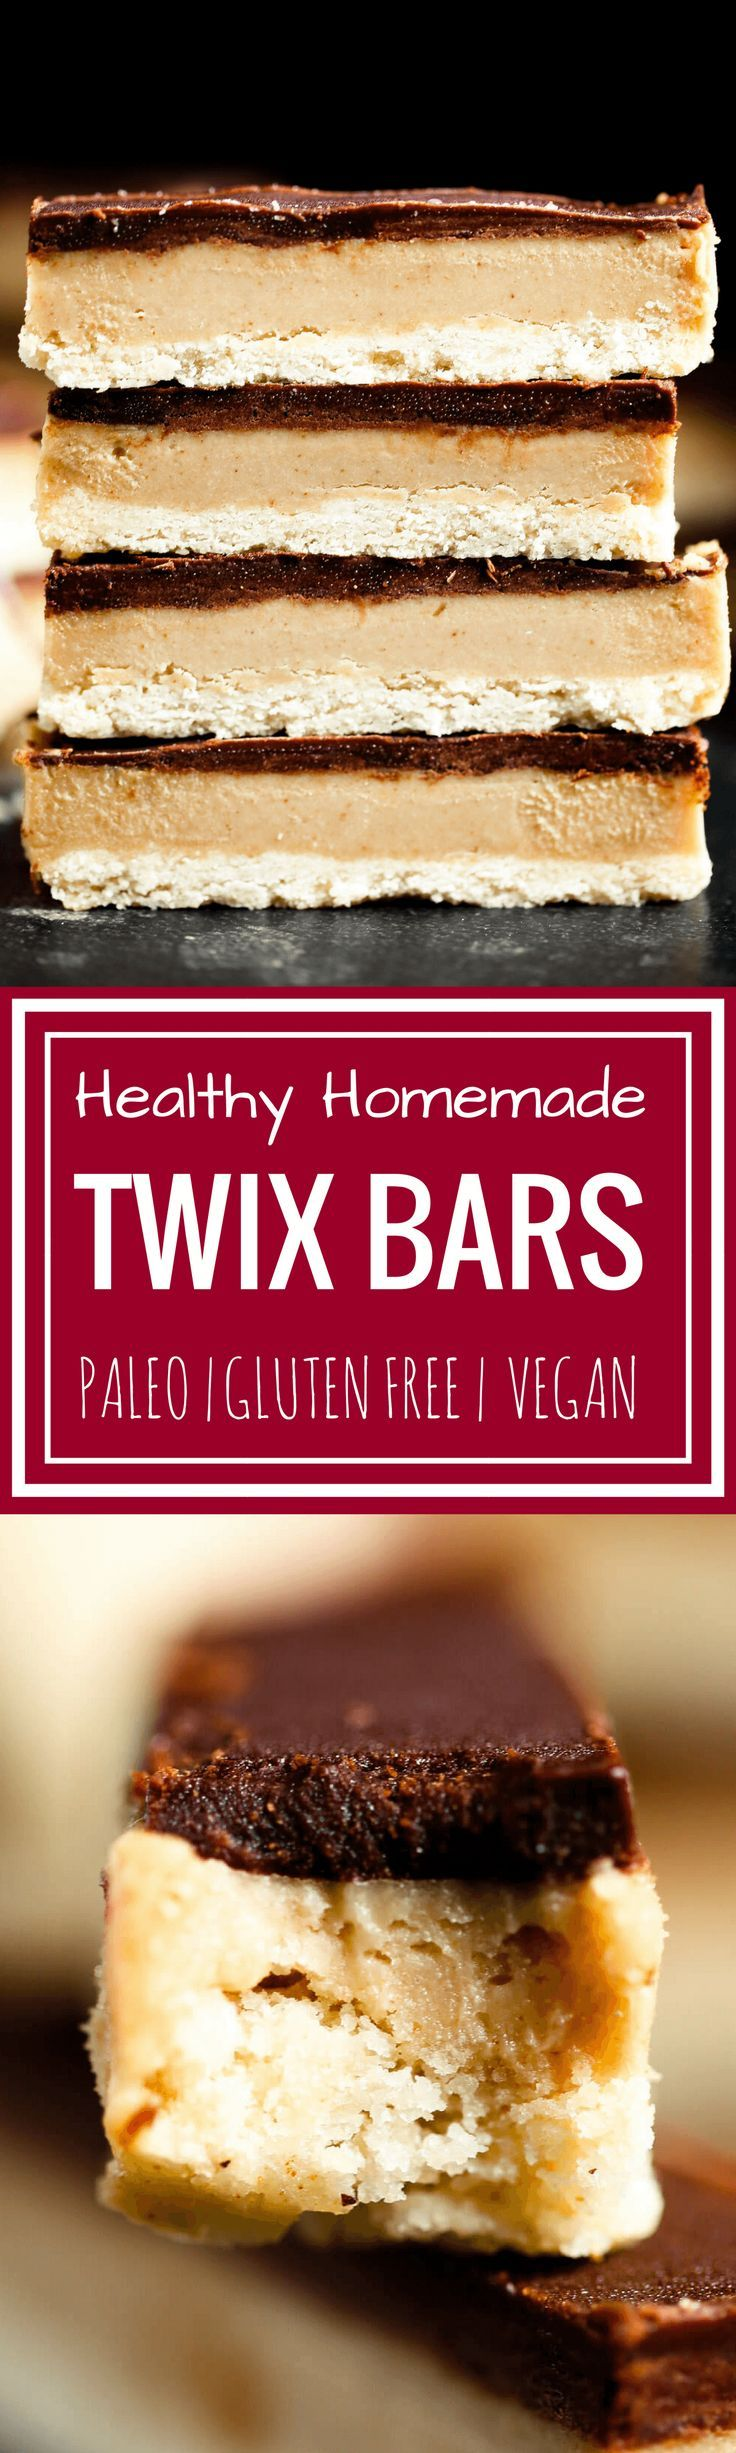 Game changer: Make these healthy paleo Twix bars at home! You won't be able to tell the difference between these copycat candy bars and the popular original. Game changer: this recipe for healthy homemade paleo Twix candy bars. They are paleo, gluten free, sugar free, and vegan. Healthy homemade Twix bar recipe. Homemade paleo Twix candy bars. Homemade Twix bars. Healthy candy recipe. Homemade paleo candy. Homemade paleo chocolate candy. Easy paleo wit bars. Easy best homemade Twix bars.